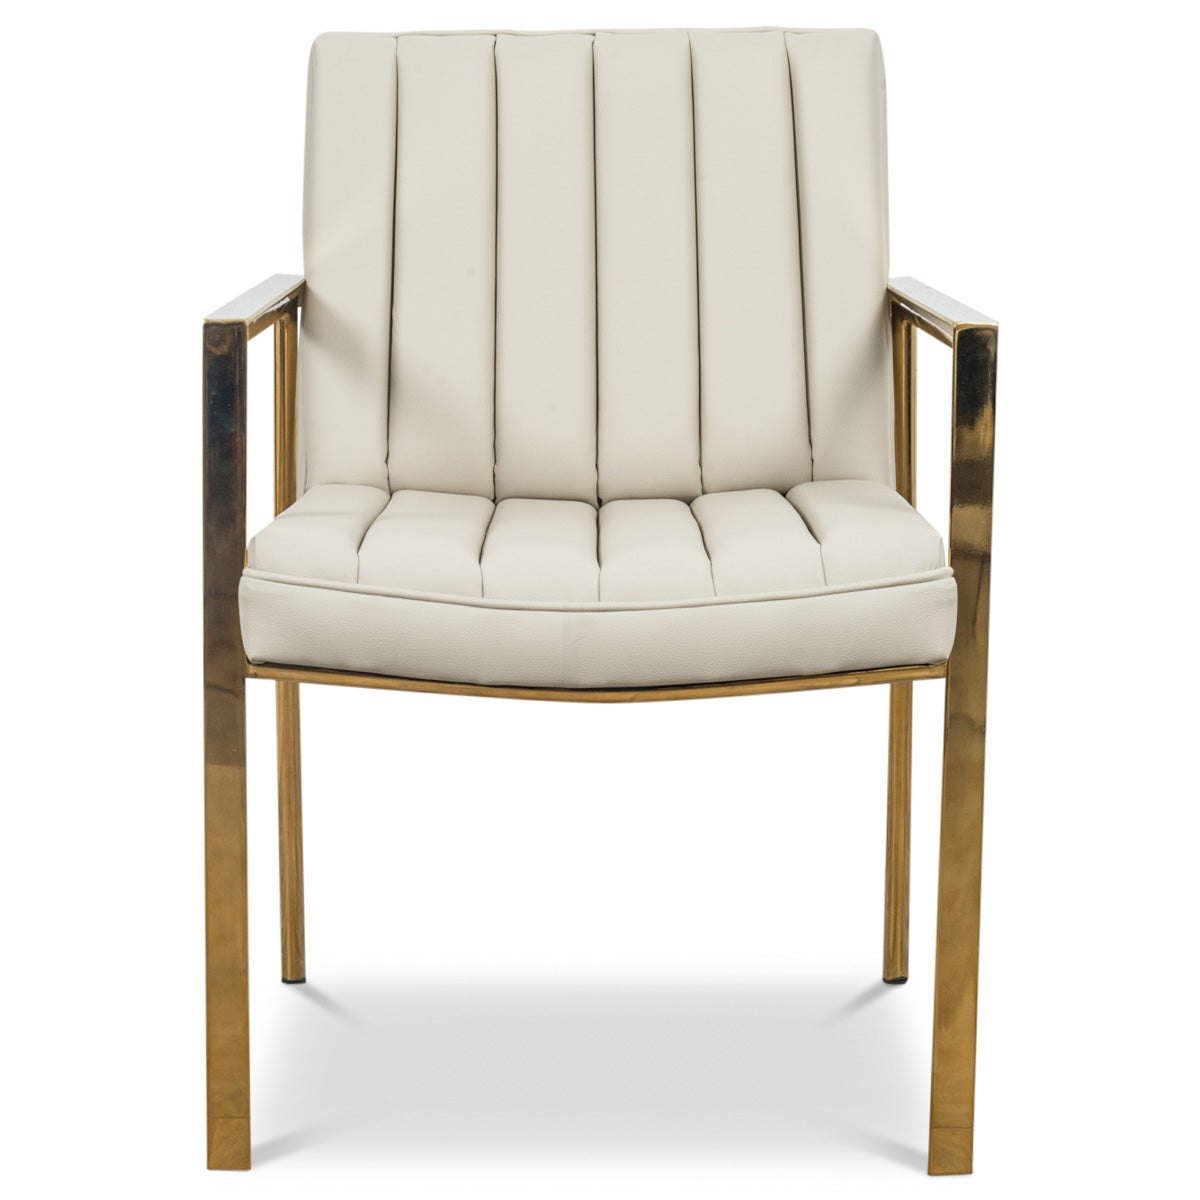 Argentina Dining Chair in Cream Faux Leather - ModShop1.com